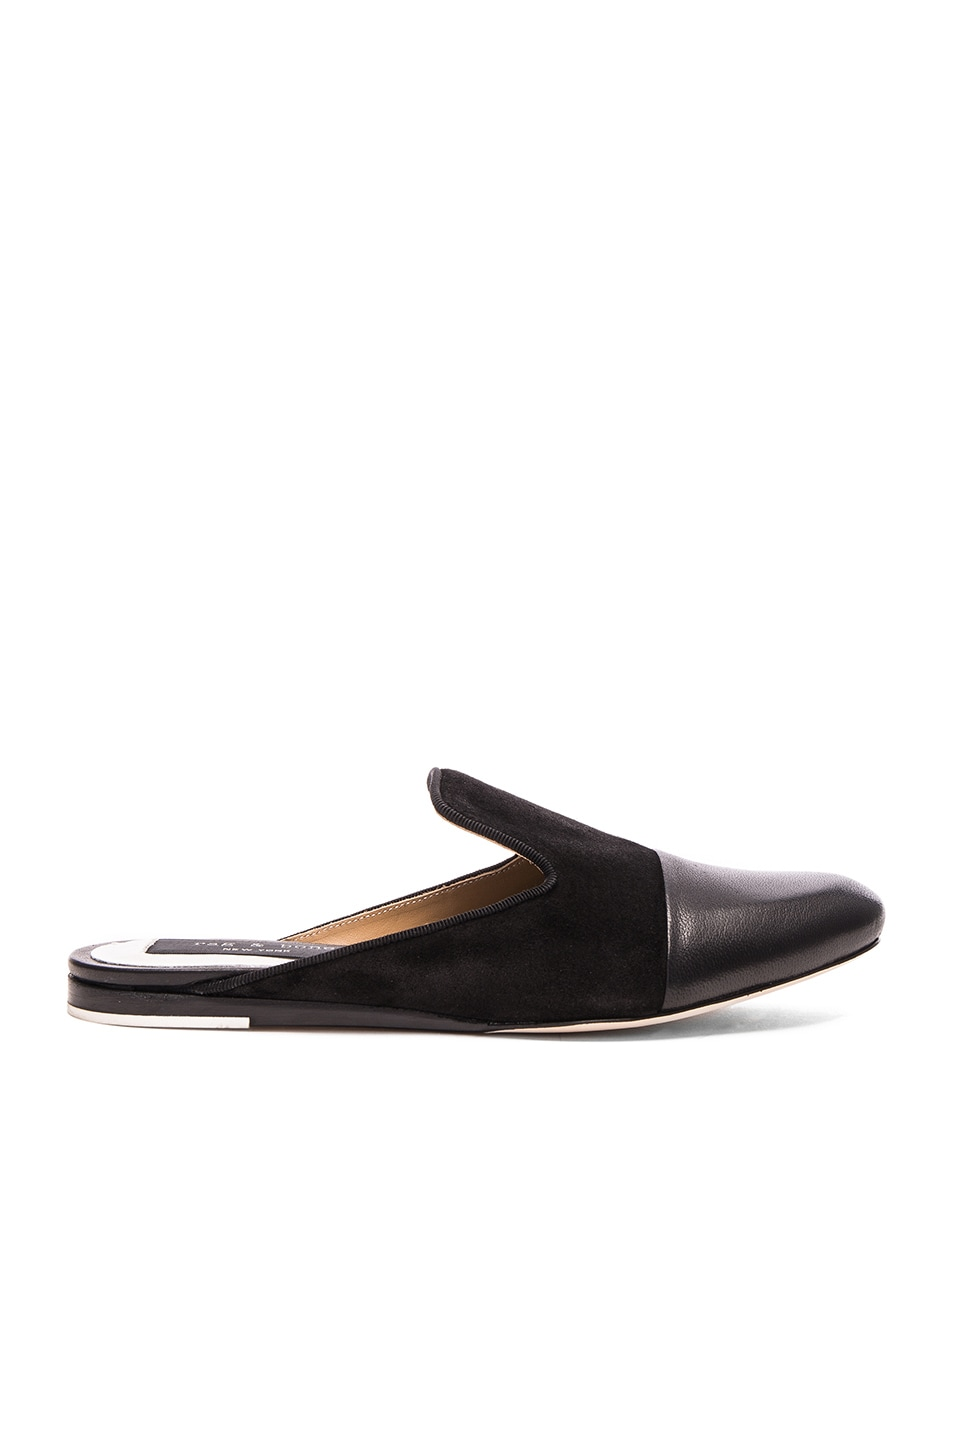 Image 1 of Rag & Bone Sabine Loafer in Black